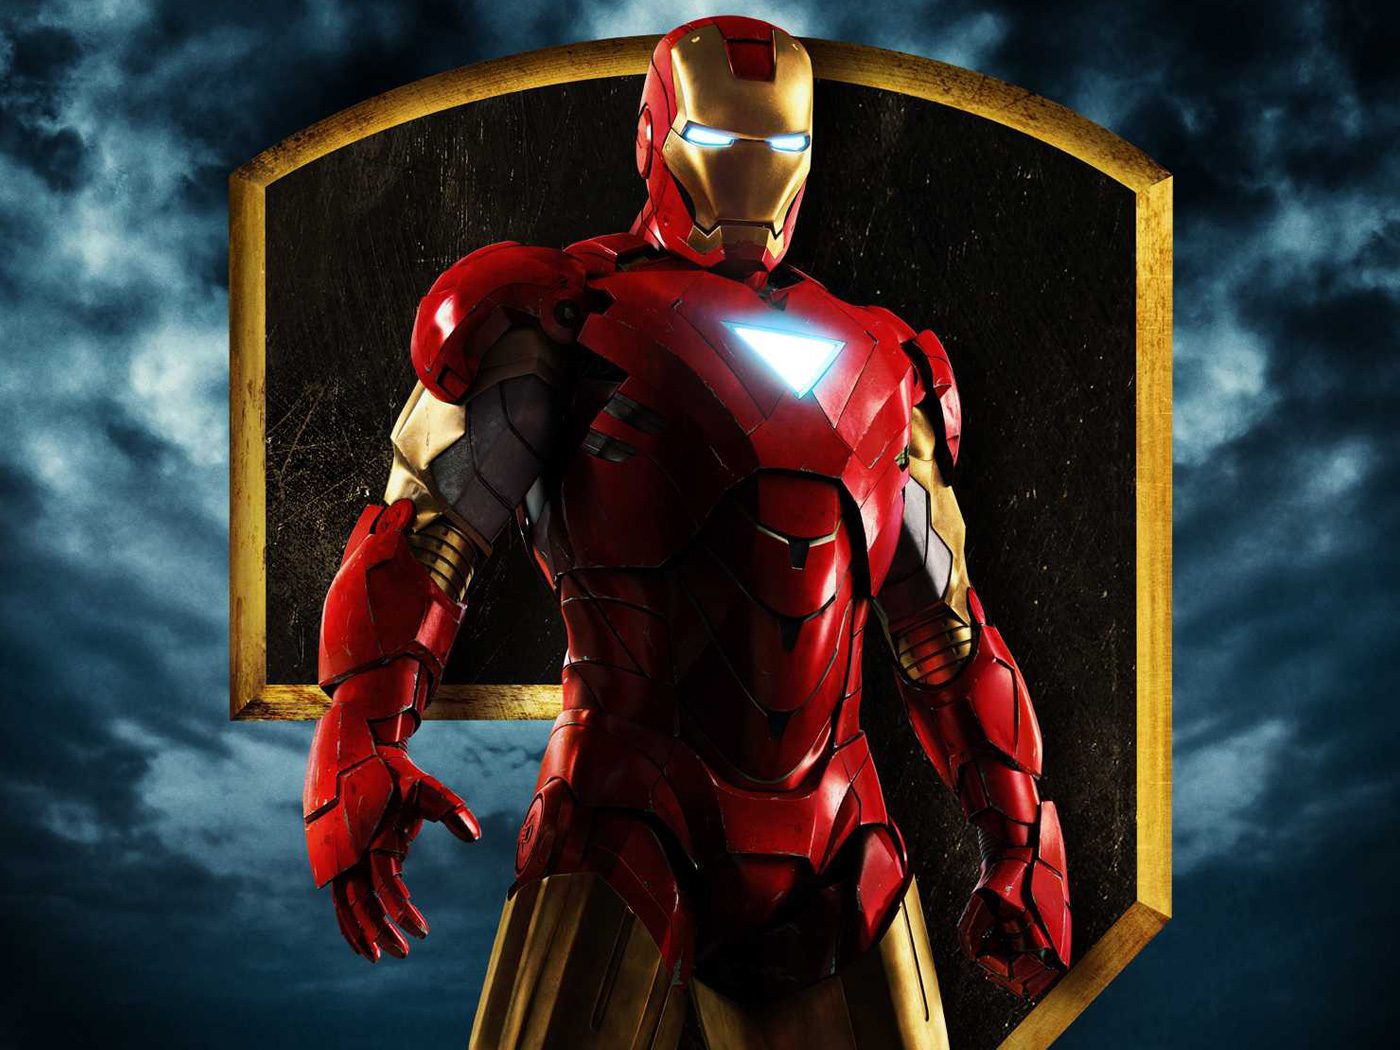 Image - Iron-Man-2-Movie-Poster-Desktop-HD-Wallpaper-1024x712.jpg ...